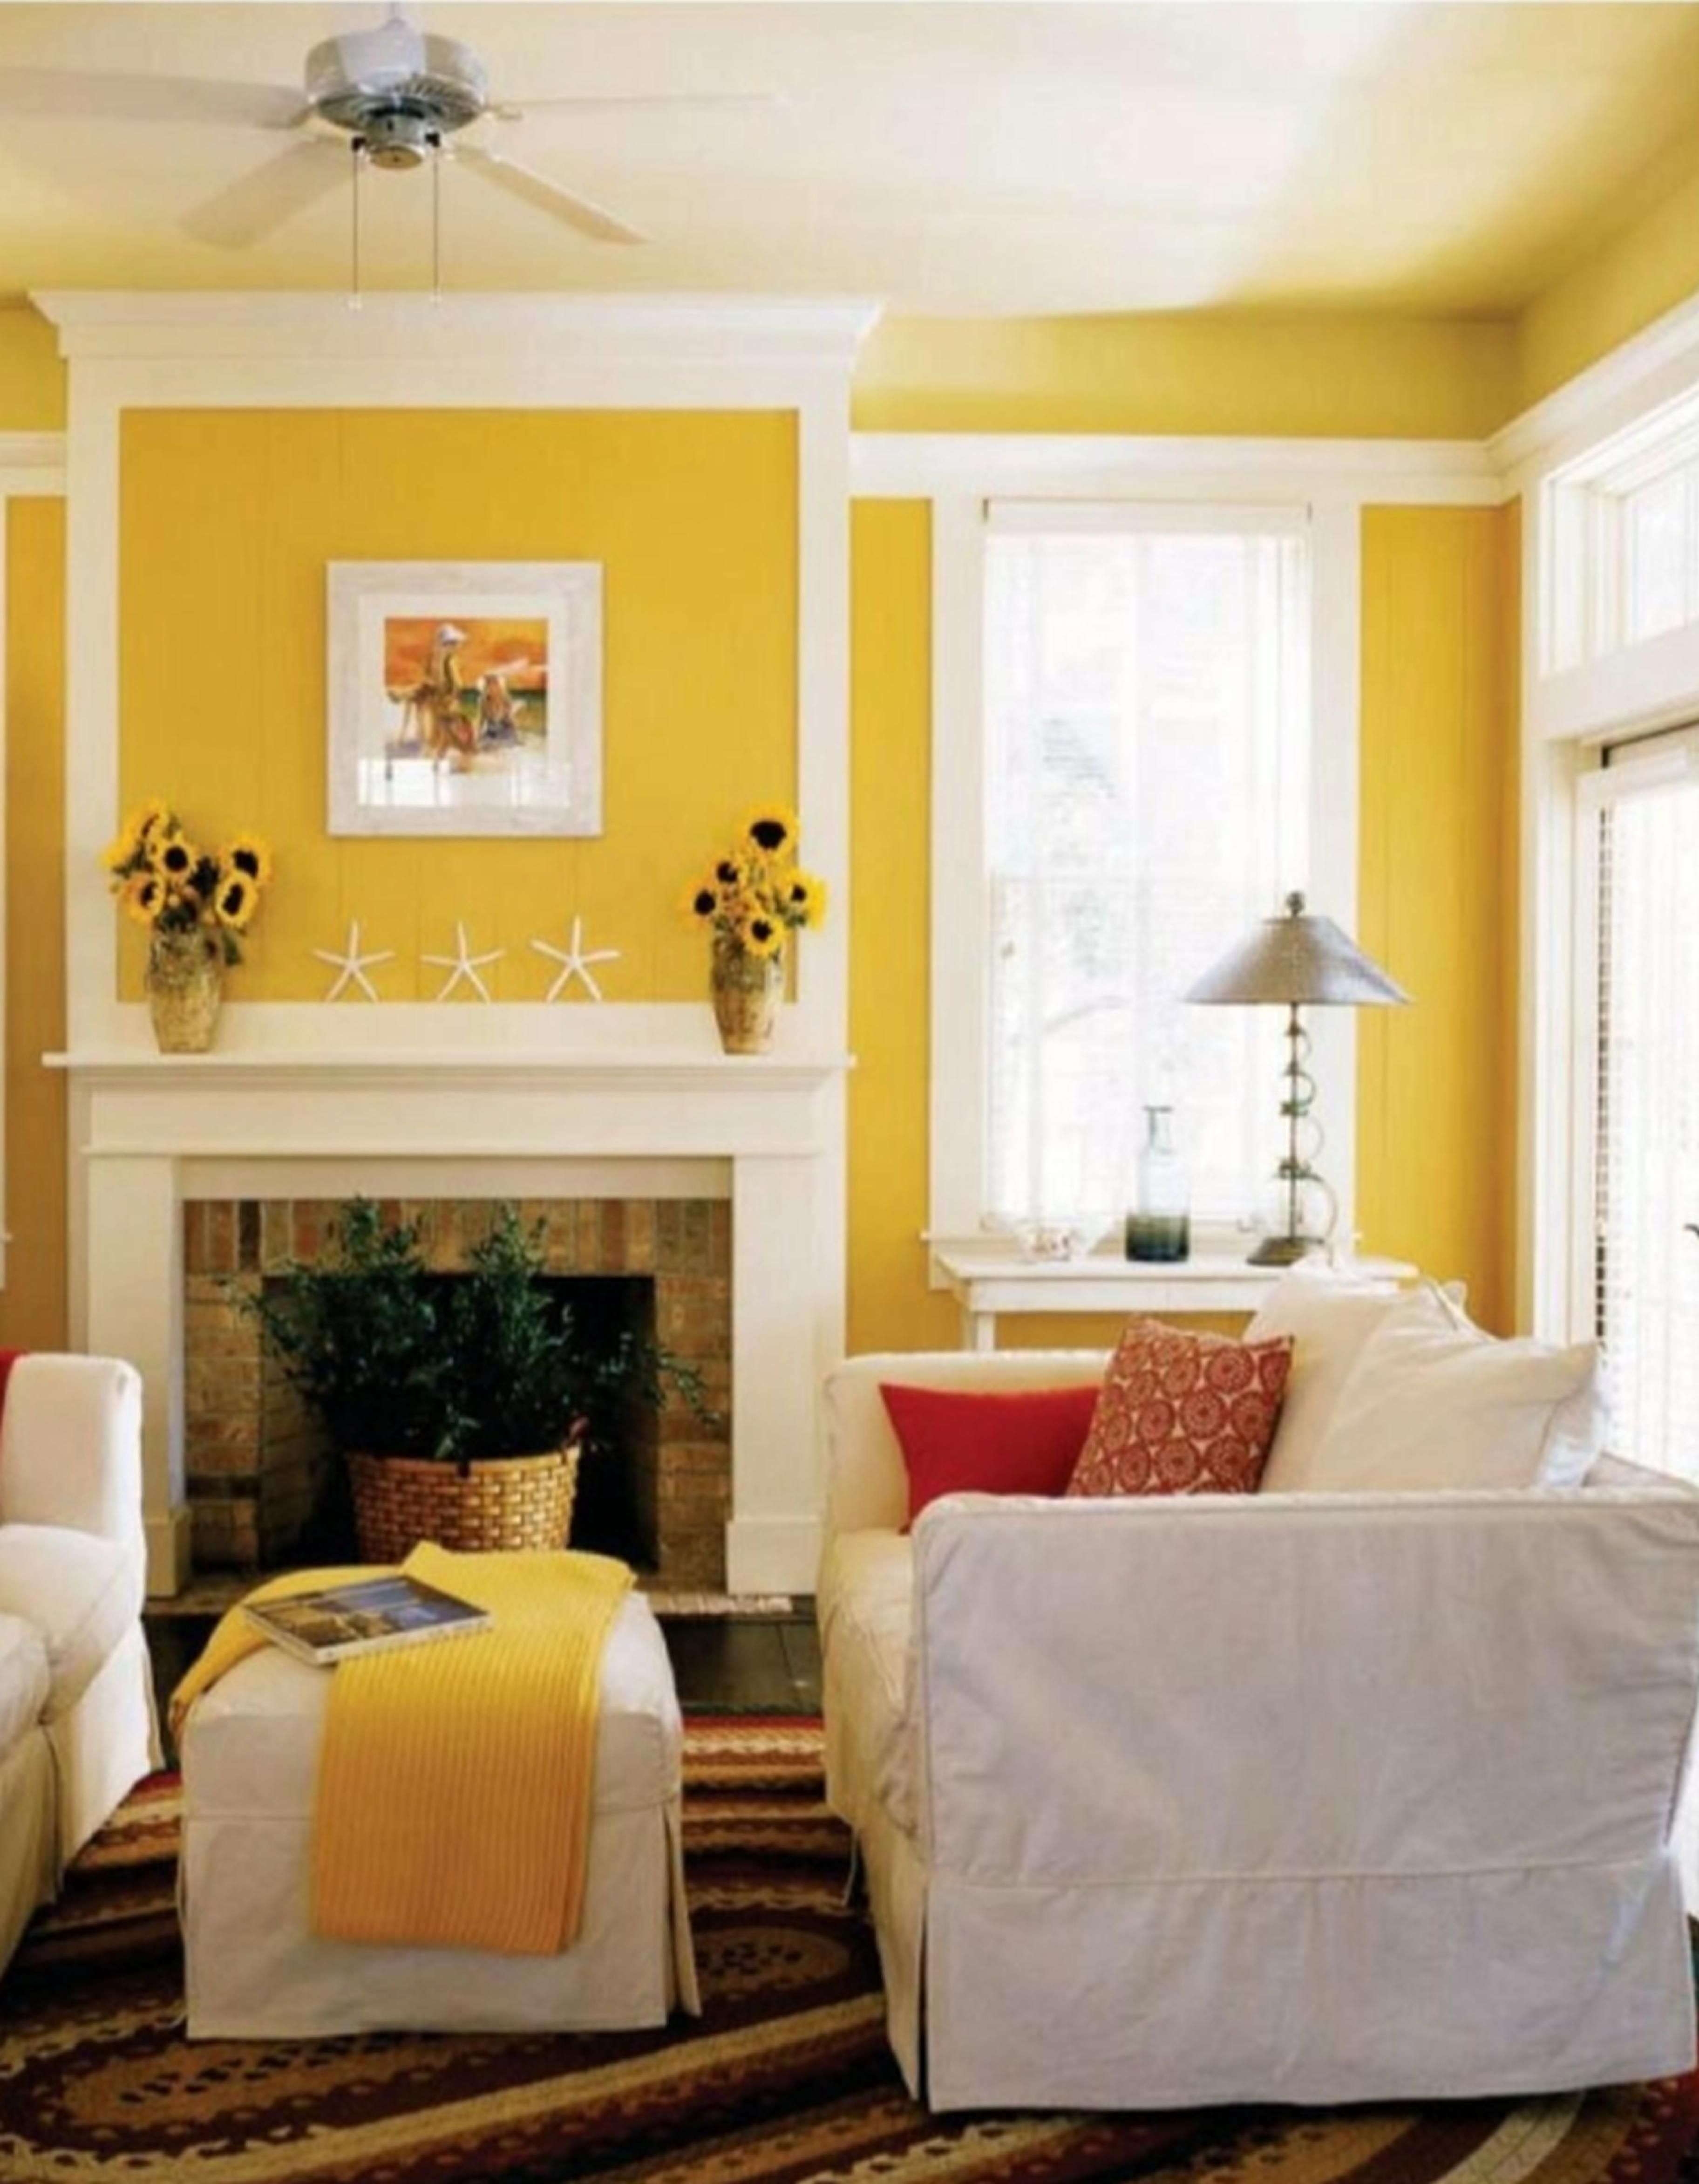 Feel Like You Got A New Home With Home Improvement -- Click image to ...